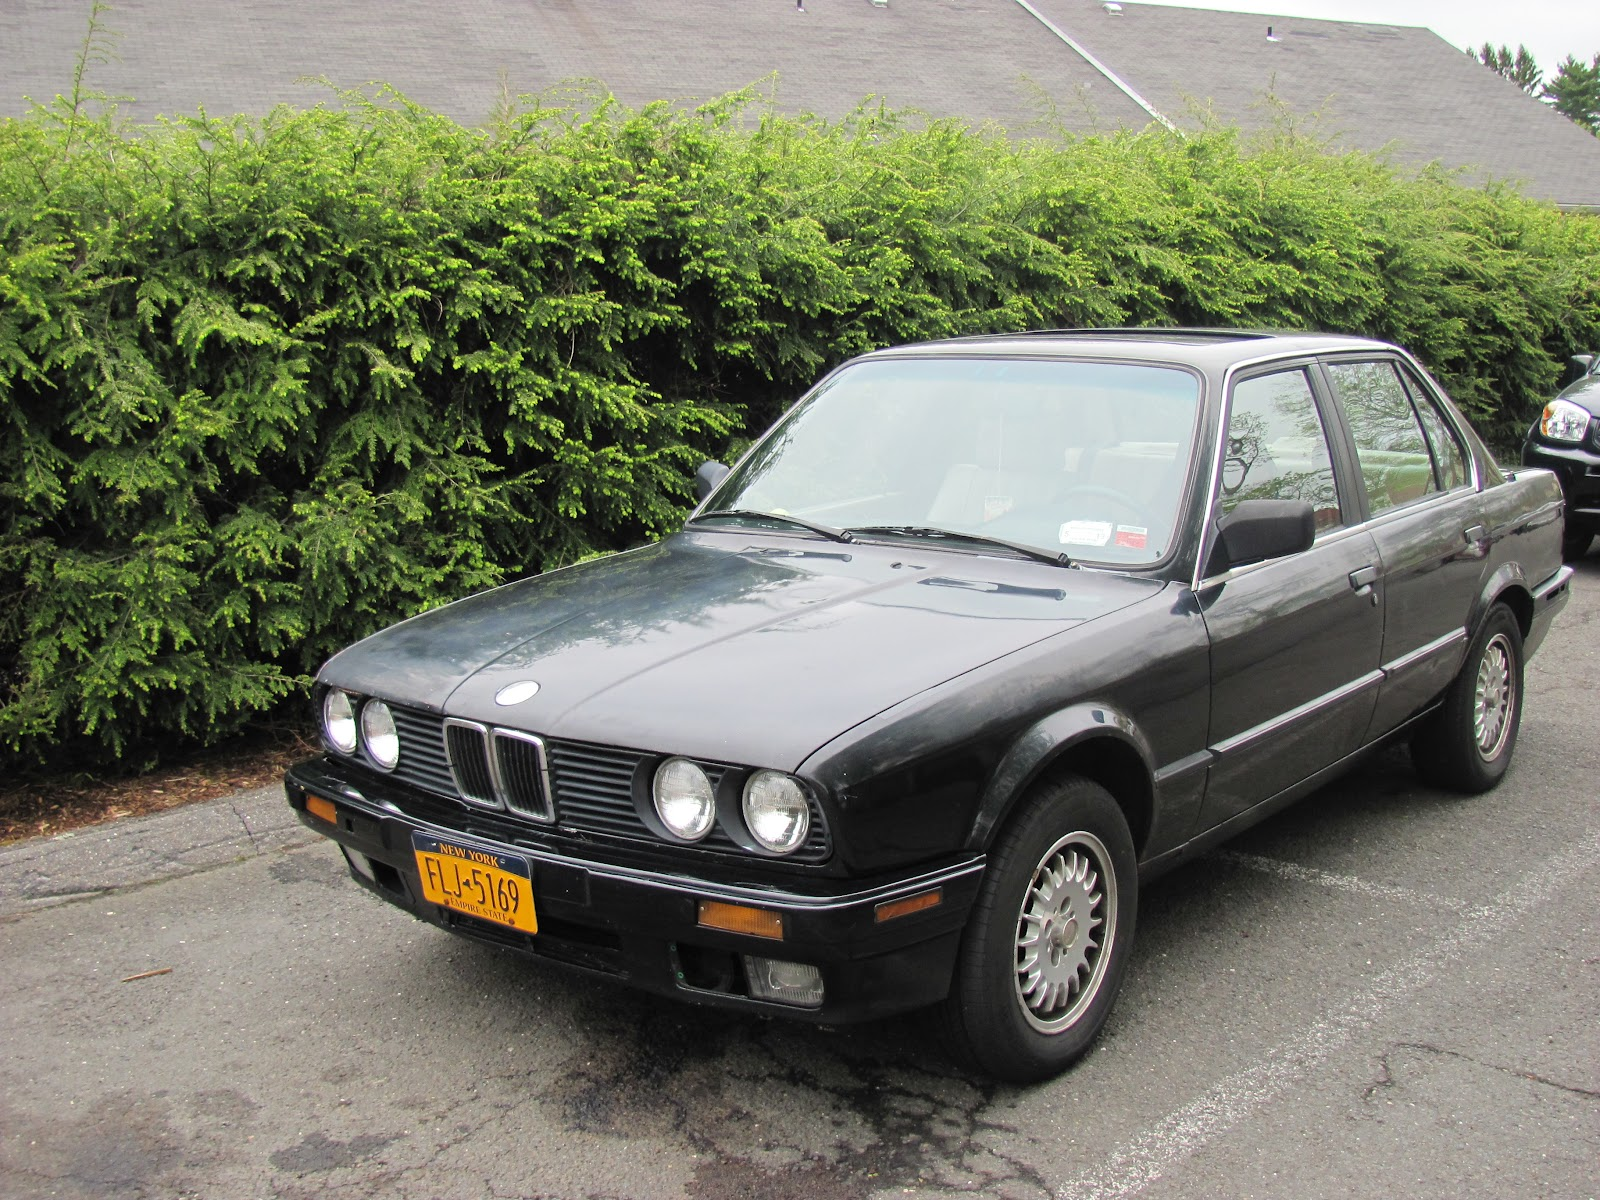 1989 bmw 325i. Black Bedroom Furniture Sets. Home Design Ideas